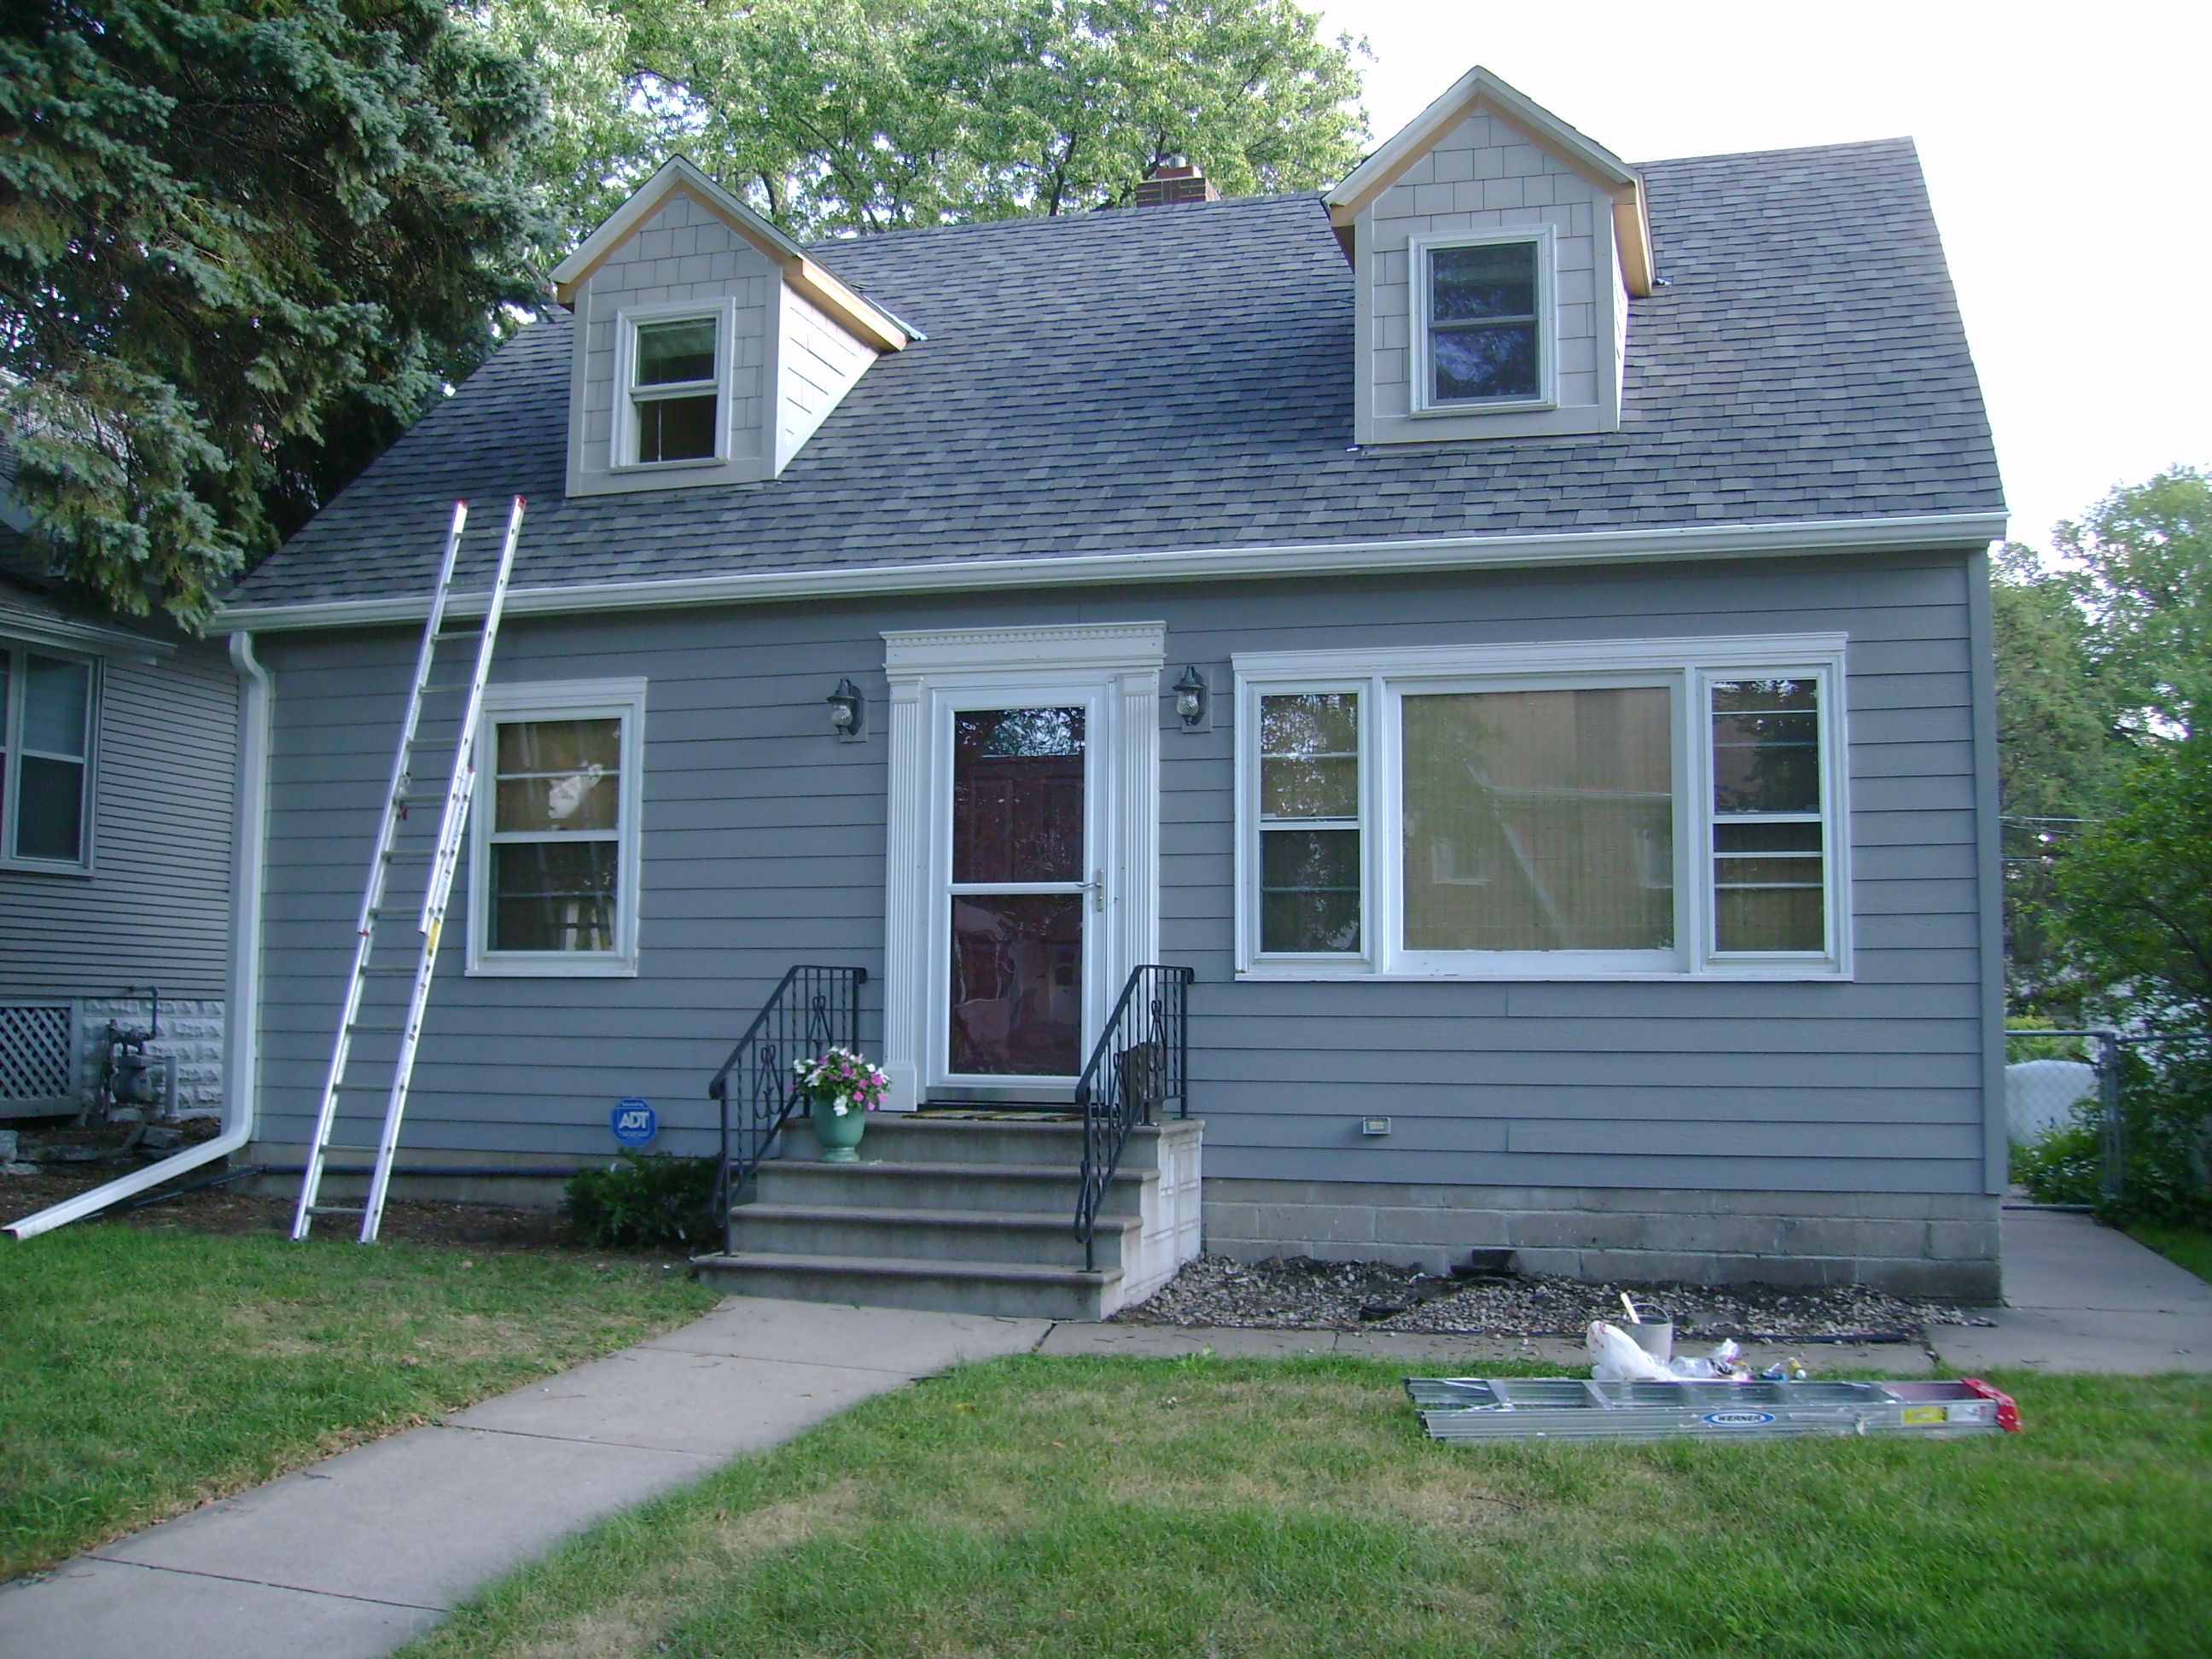 Green trim | Exterior Paint colors for our home | Pinterest | Grey ...